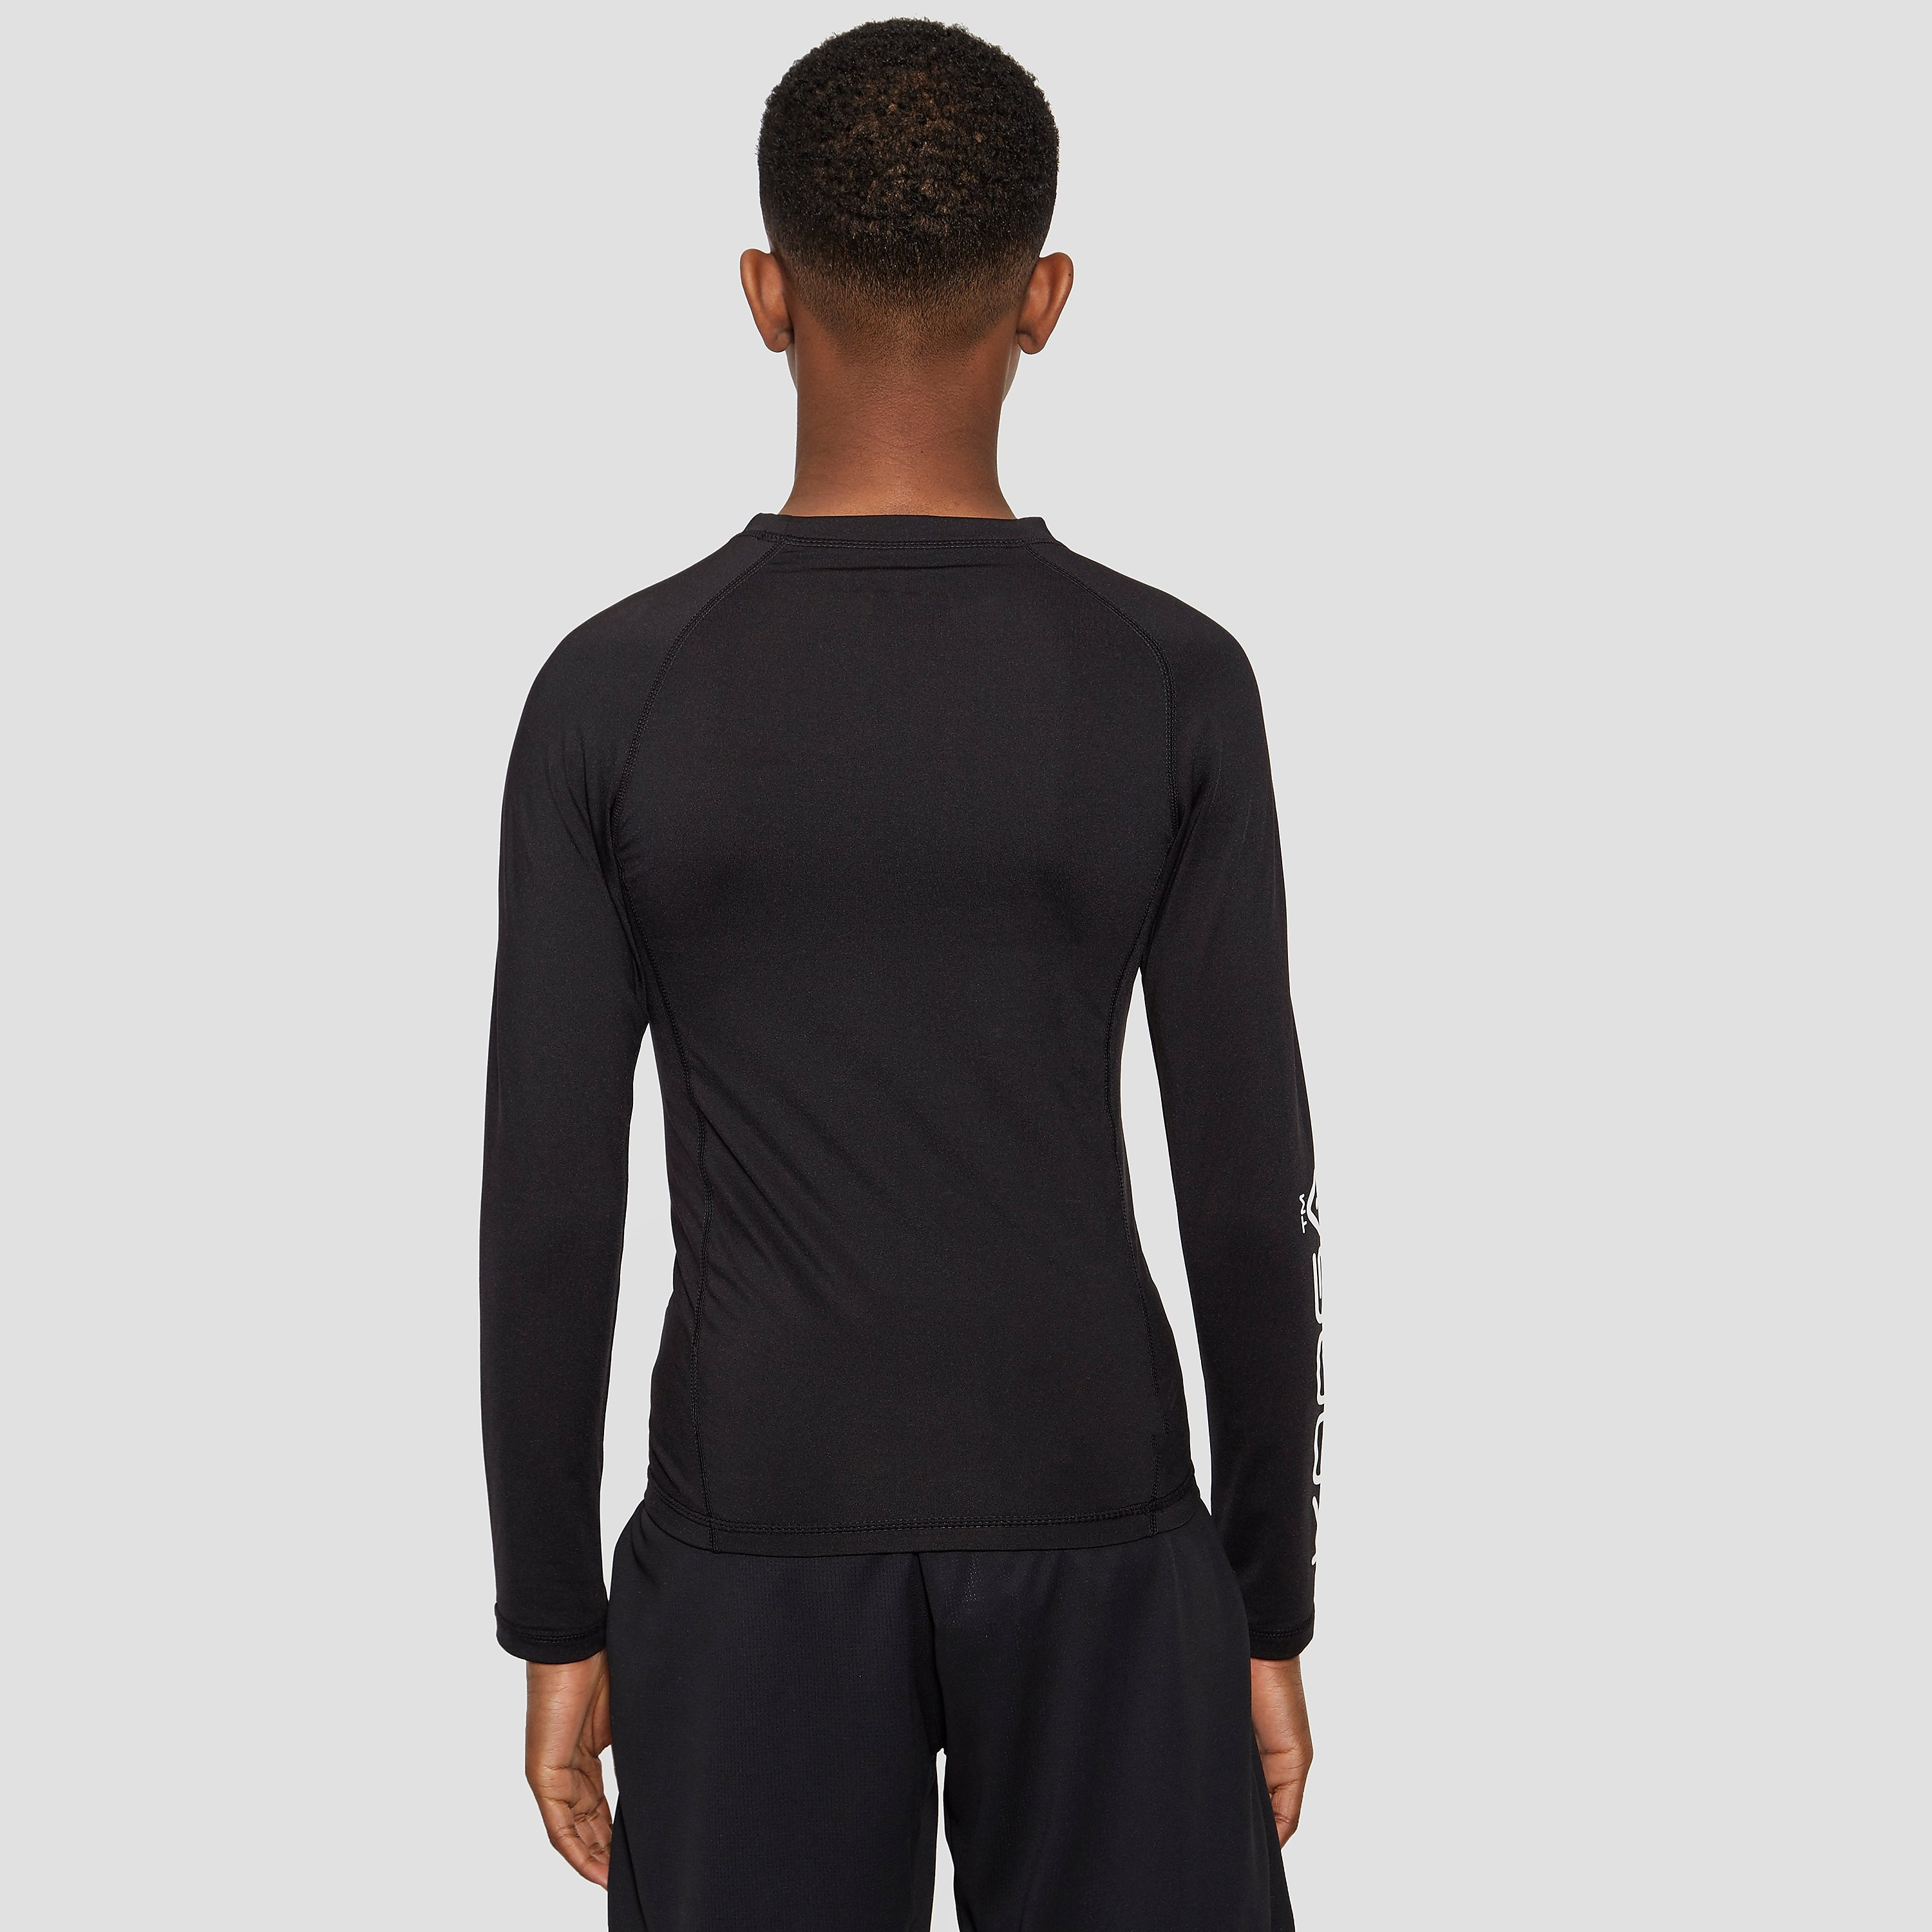 KooGa Elite Junior Power Compression Top